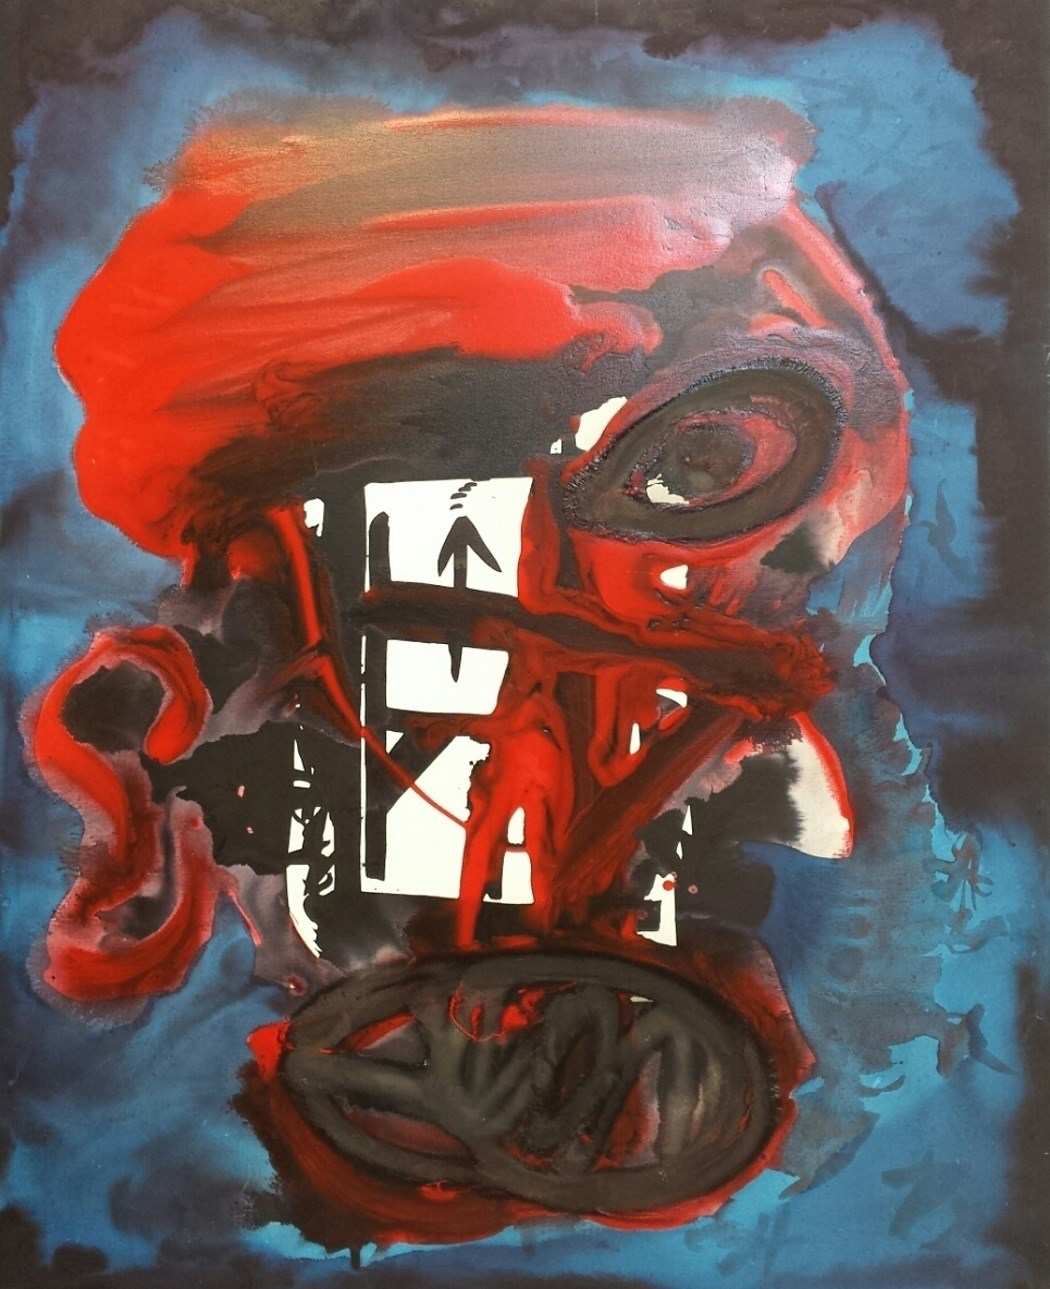 Morto ou vivo, original Abstract Canvas Painting by Francisco Capelo